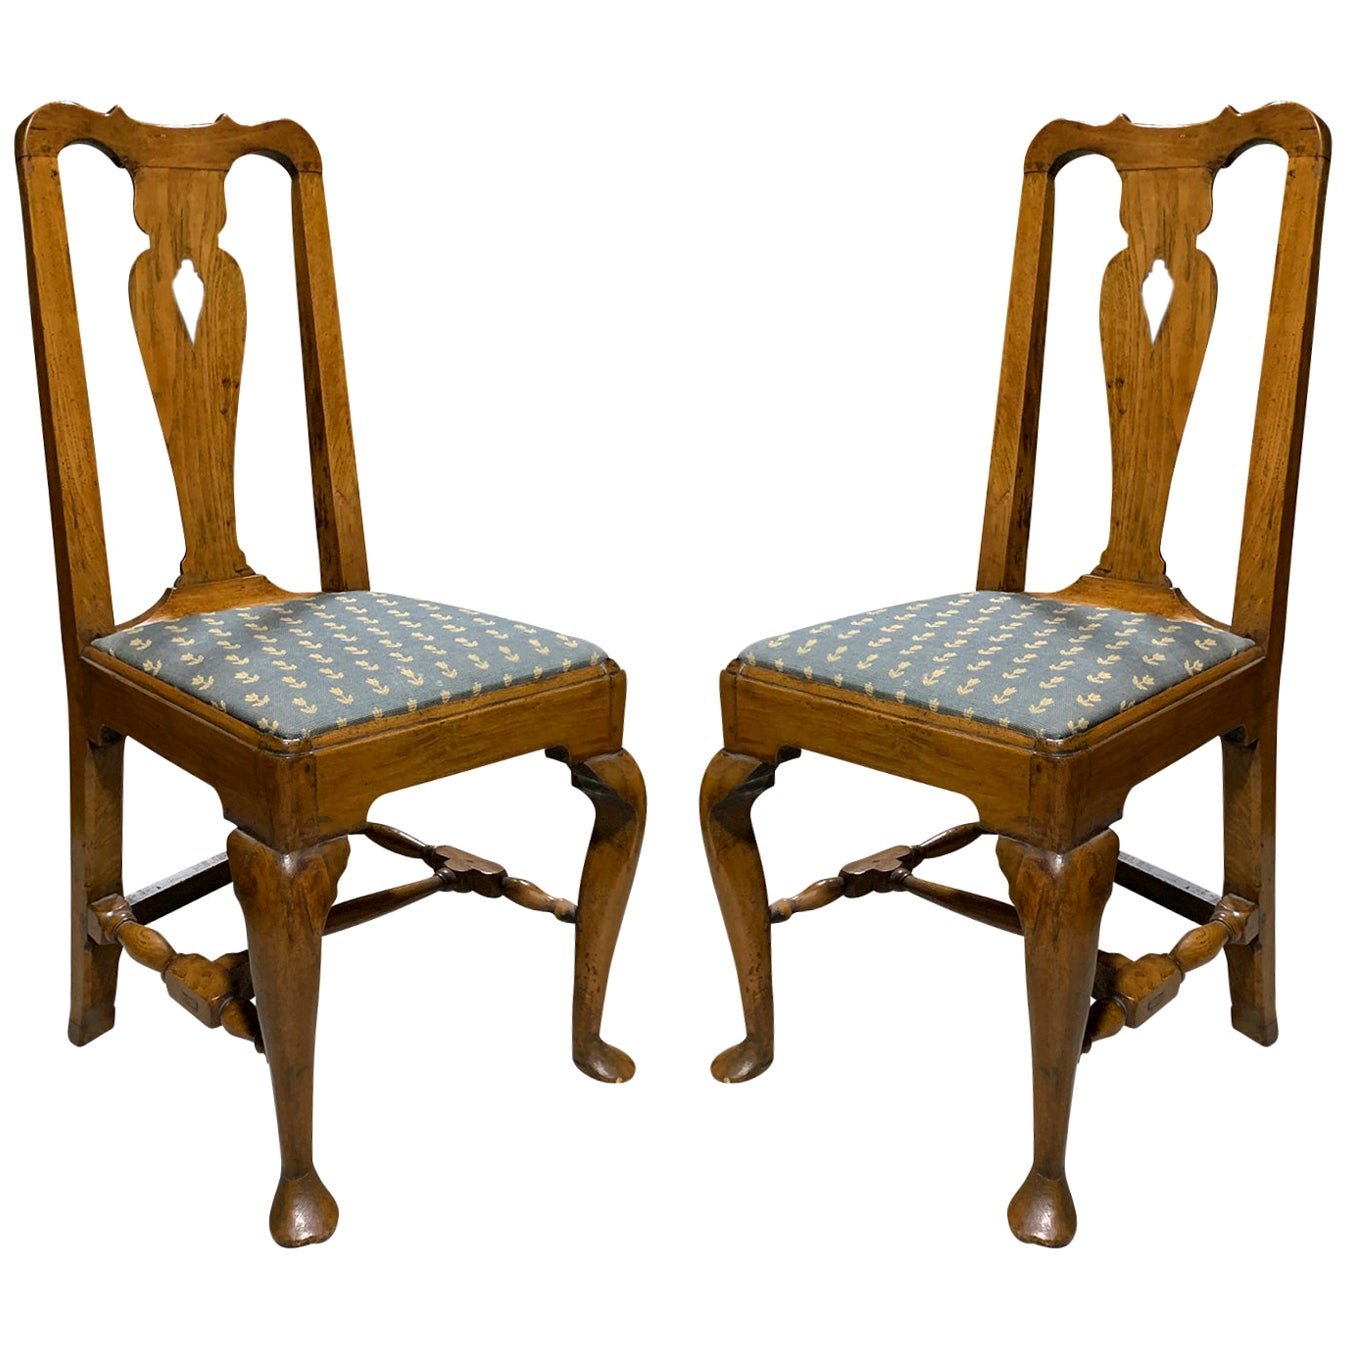 Pair of 19th Century English Oak Side Chairs